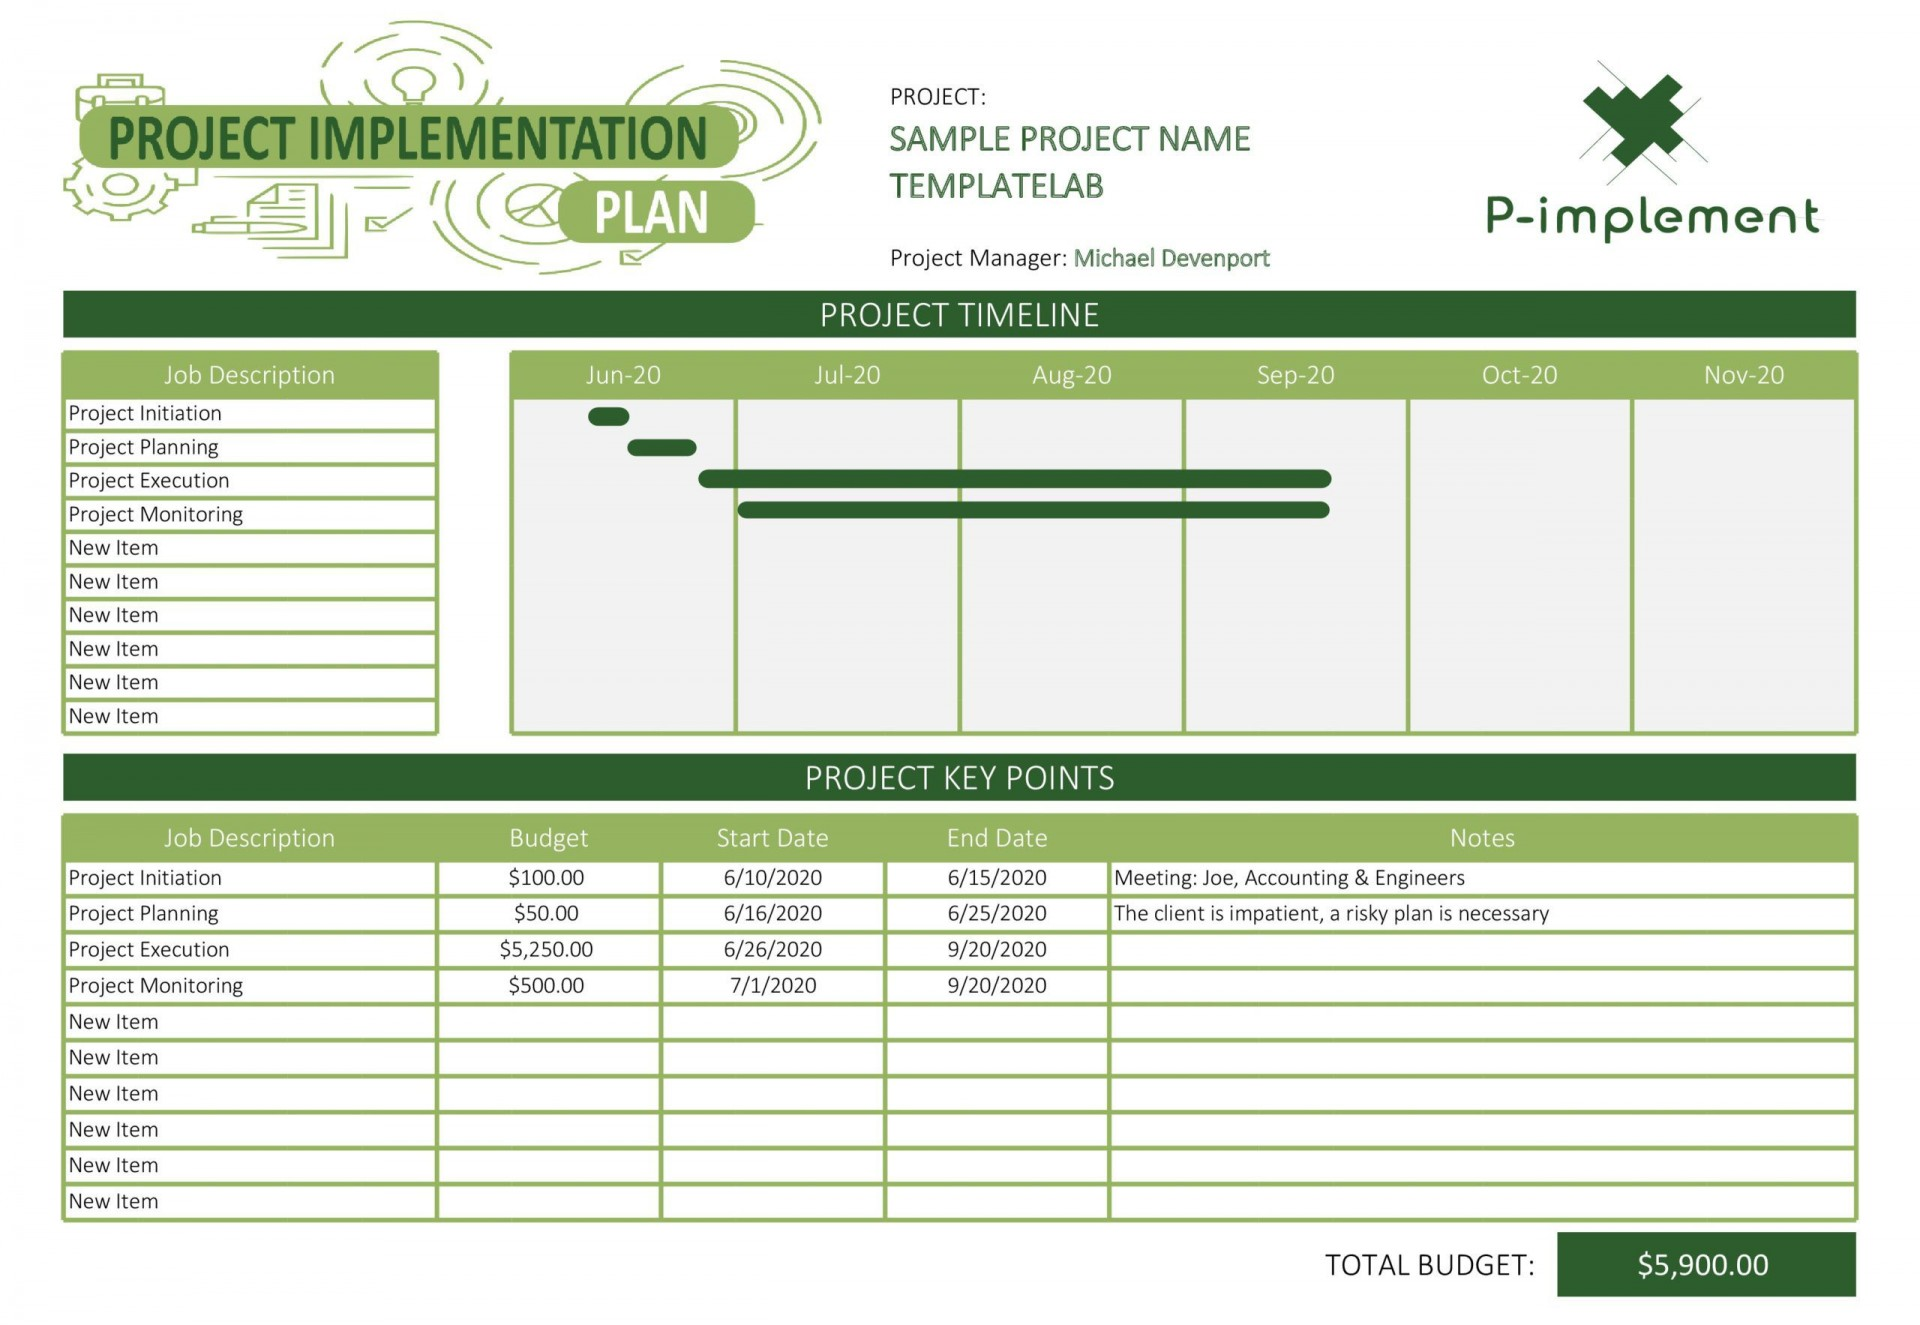 001 Remarkable Project Planning Template Word Free High Def  Simple Management Plan Schedule1920